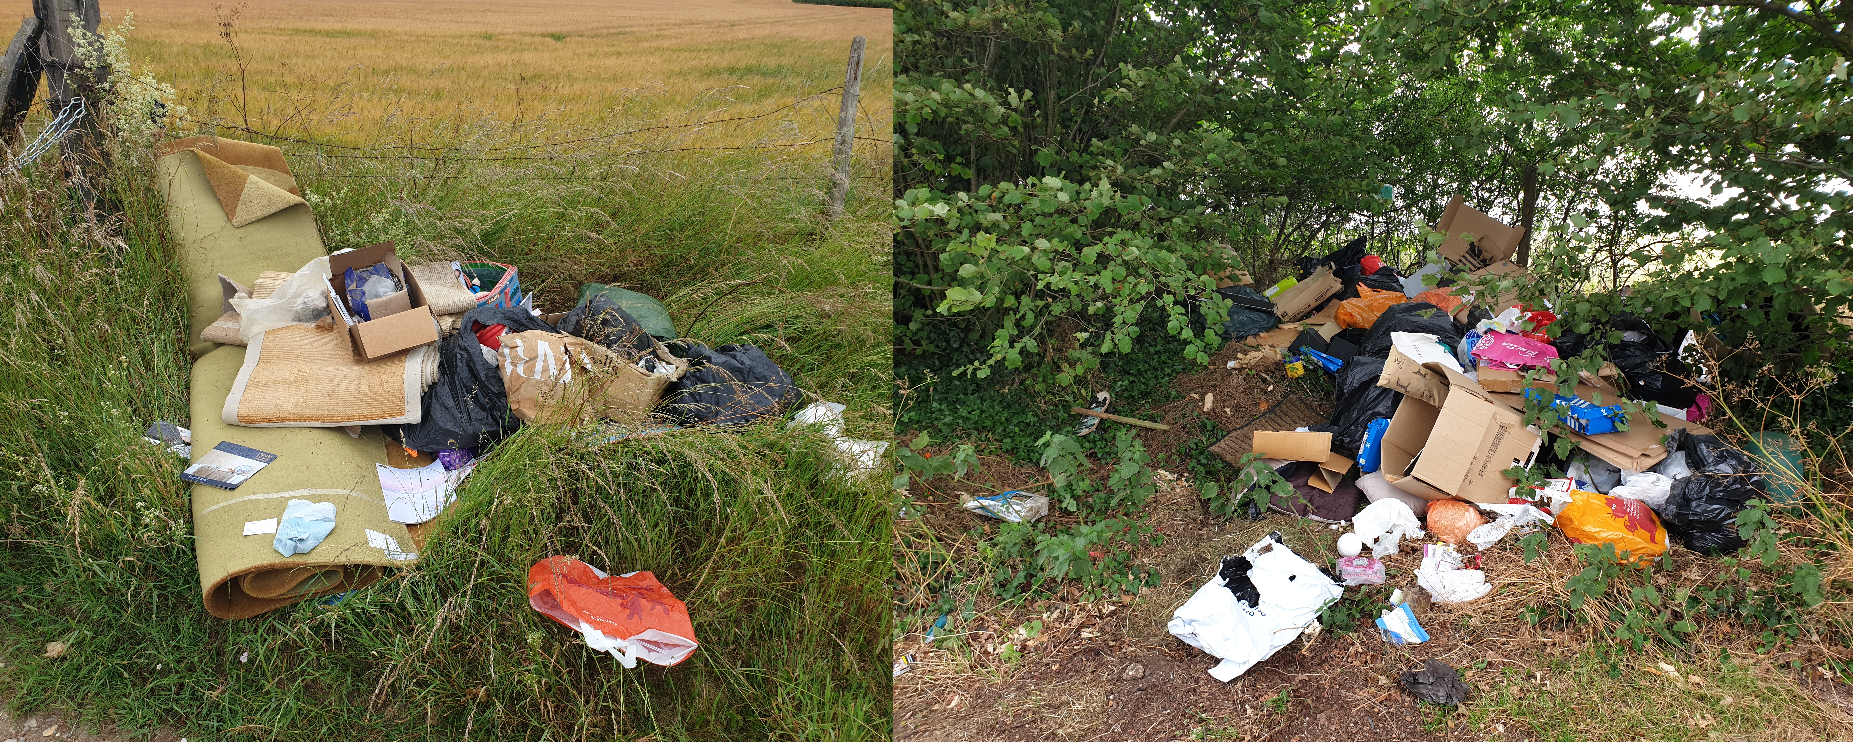 Man ordered to carry out 120 hours unpaid work after pleading guilty to two fly-tips